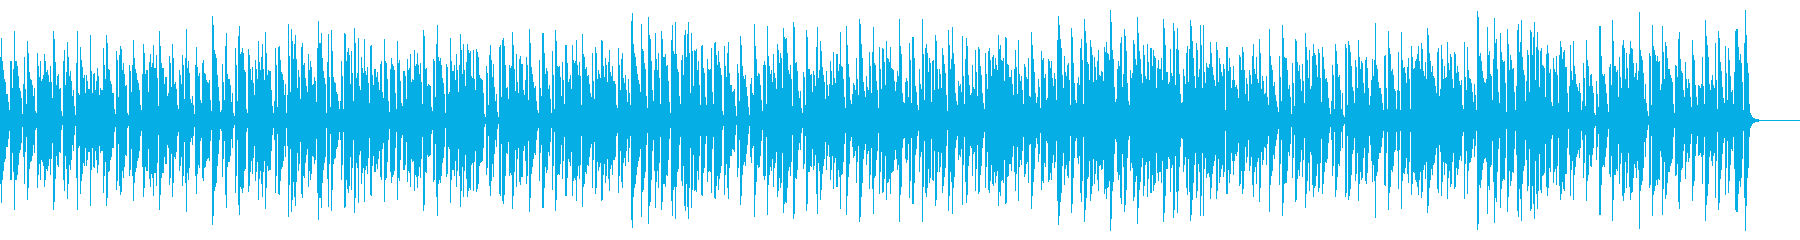 A masterpiece with a light and fashionable bossa nova's reproduced waveform